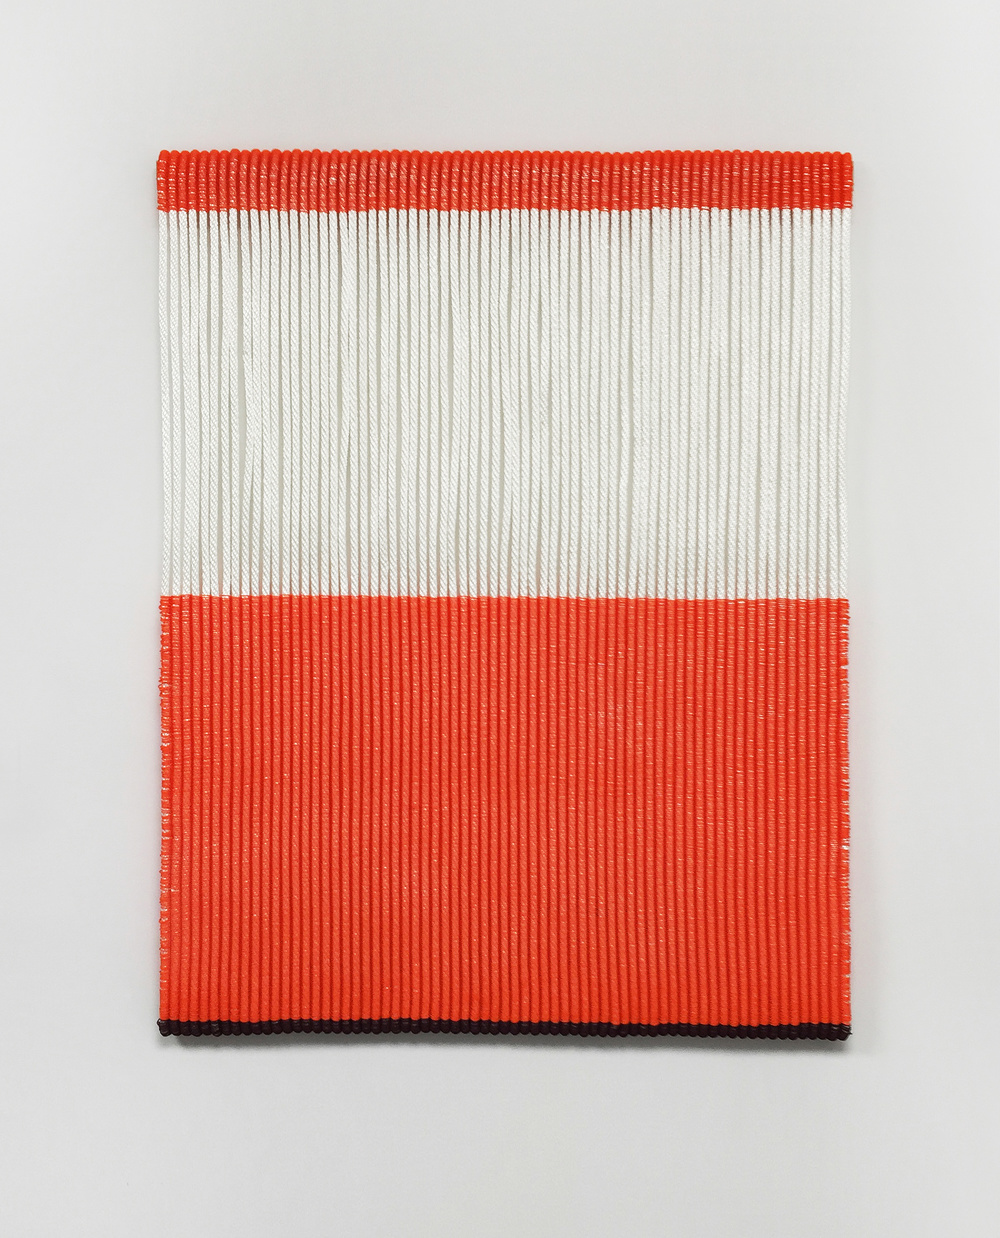 Neon Orange Rectangles Mimi Jung